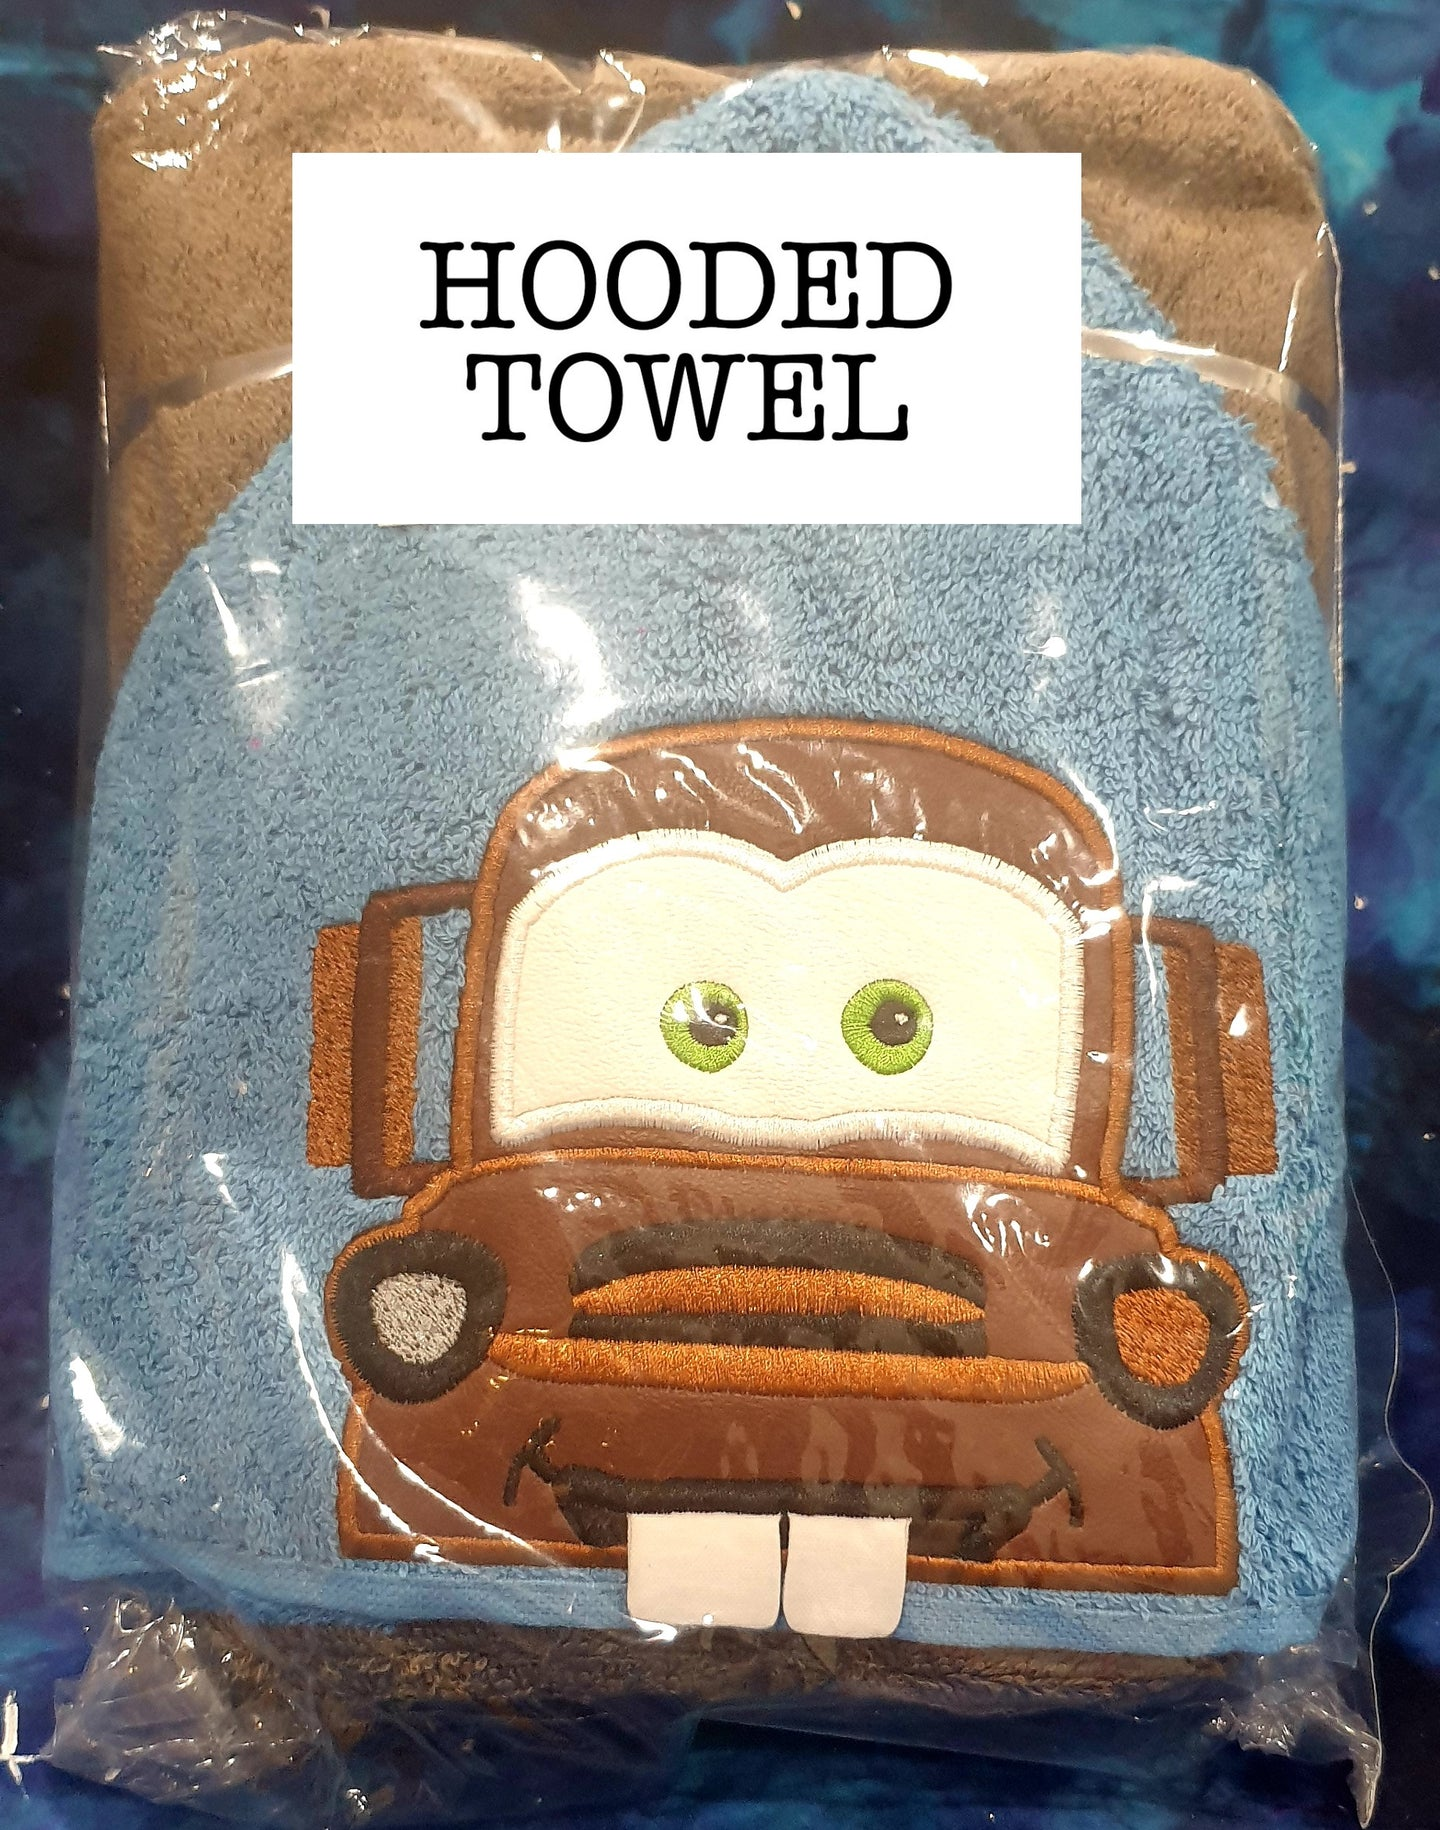 Mate Tow Truck Hooded Towel